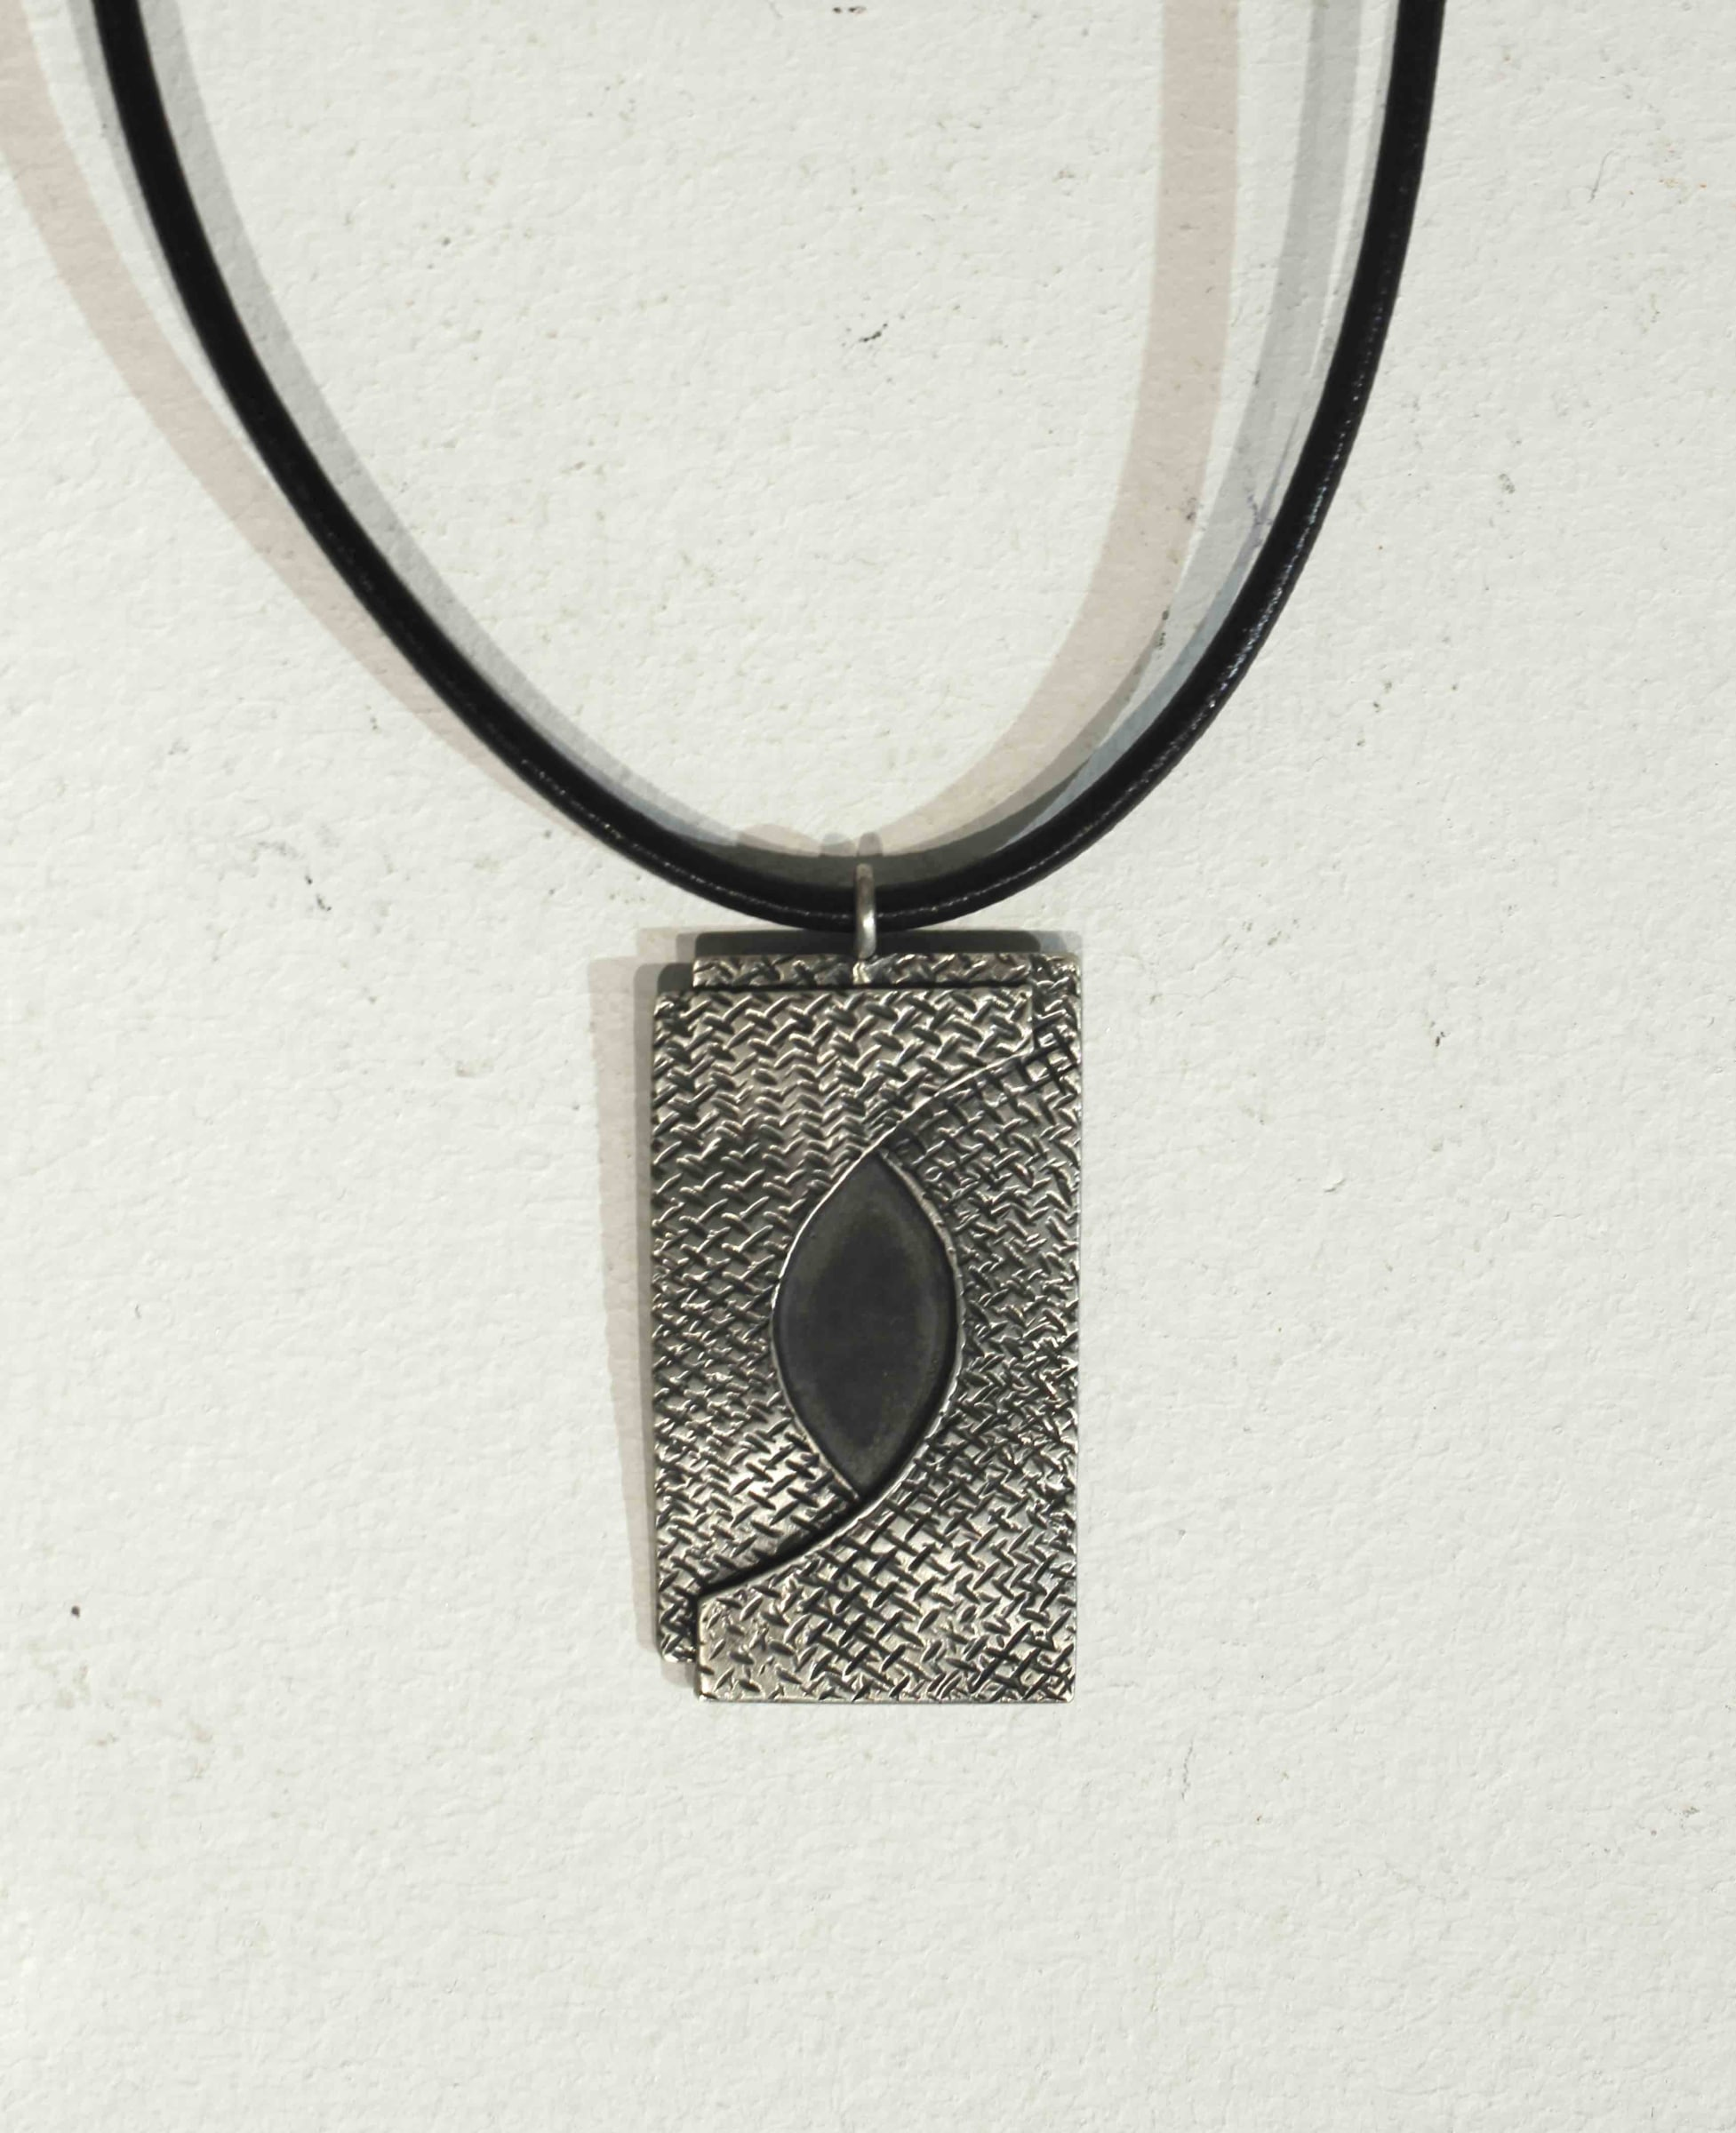 "<span class=""link fancybox-details-link""><a href=""/artists/186-helen-feiler/works/4627-helen-feiler-double-layer-square-pendant/"">View Detail Page</a></span><div class=""artist""><strong>Helen Feiler</strong></div> <div class=""title""><em>Double Layer, Square Pendant</em></div> <div class=""medium"">Silver </div><div class=""price"">£180.00</div><div class=""copyright_line"">OwnArt: £ 180 x 10 Months, 0% APR</div>"